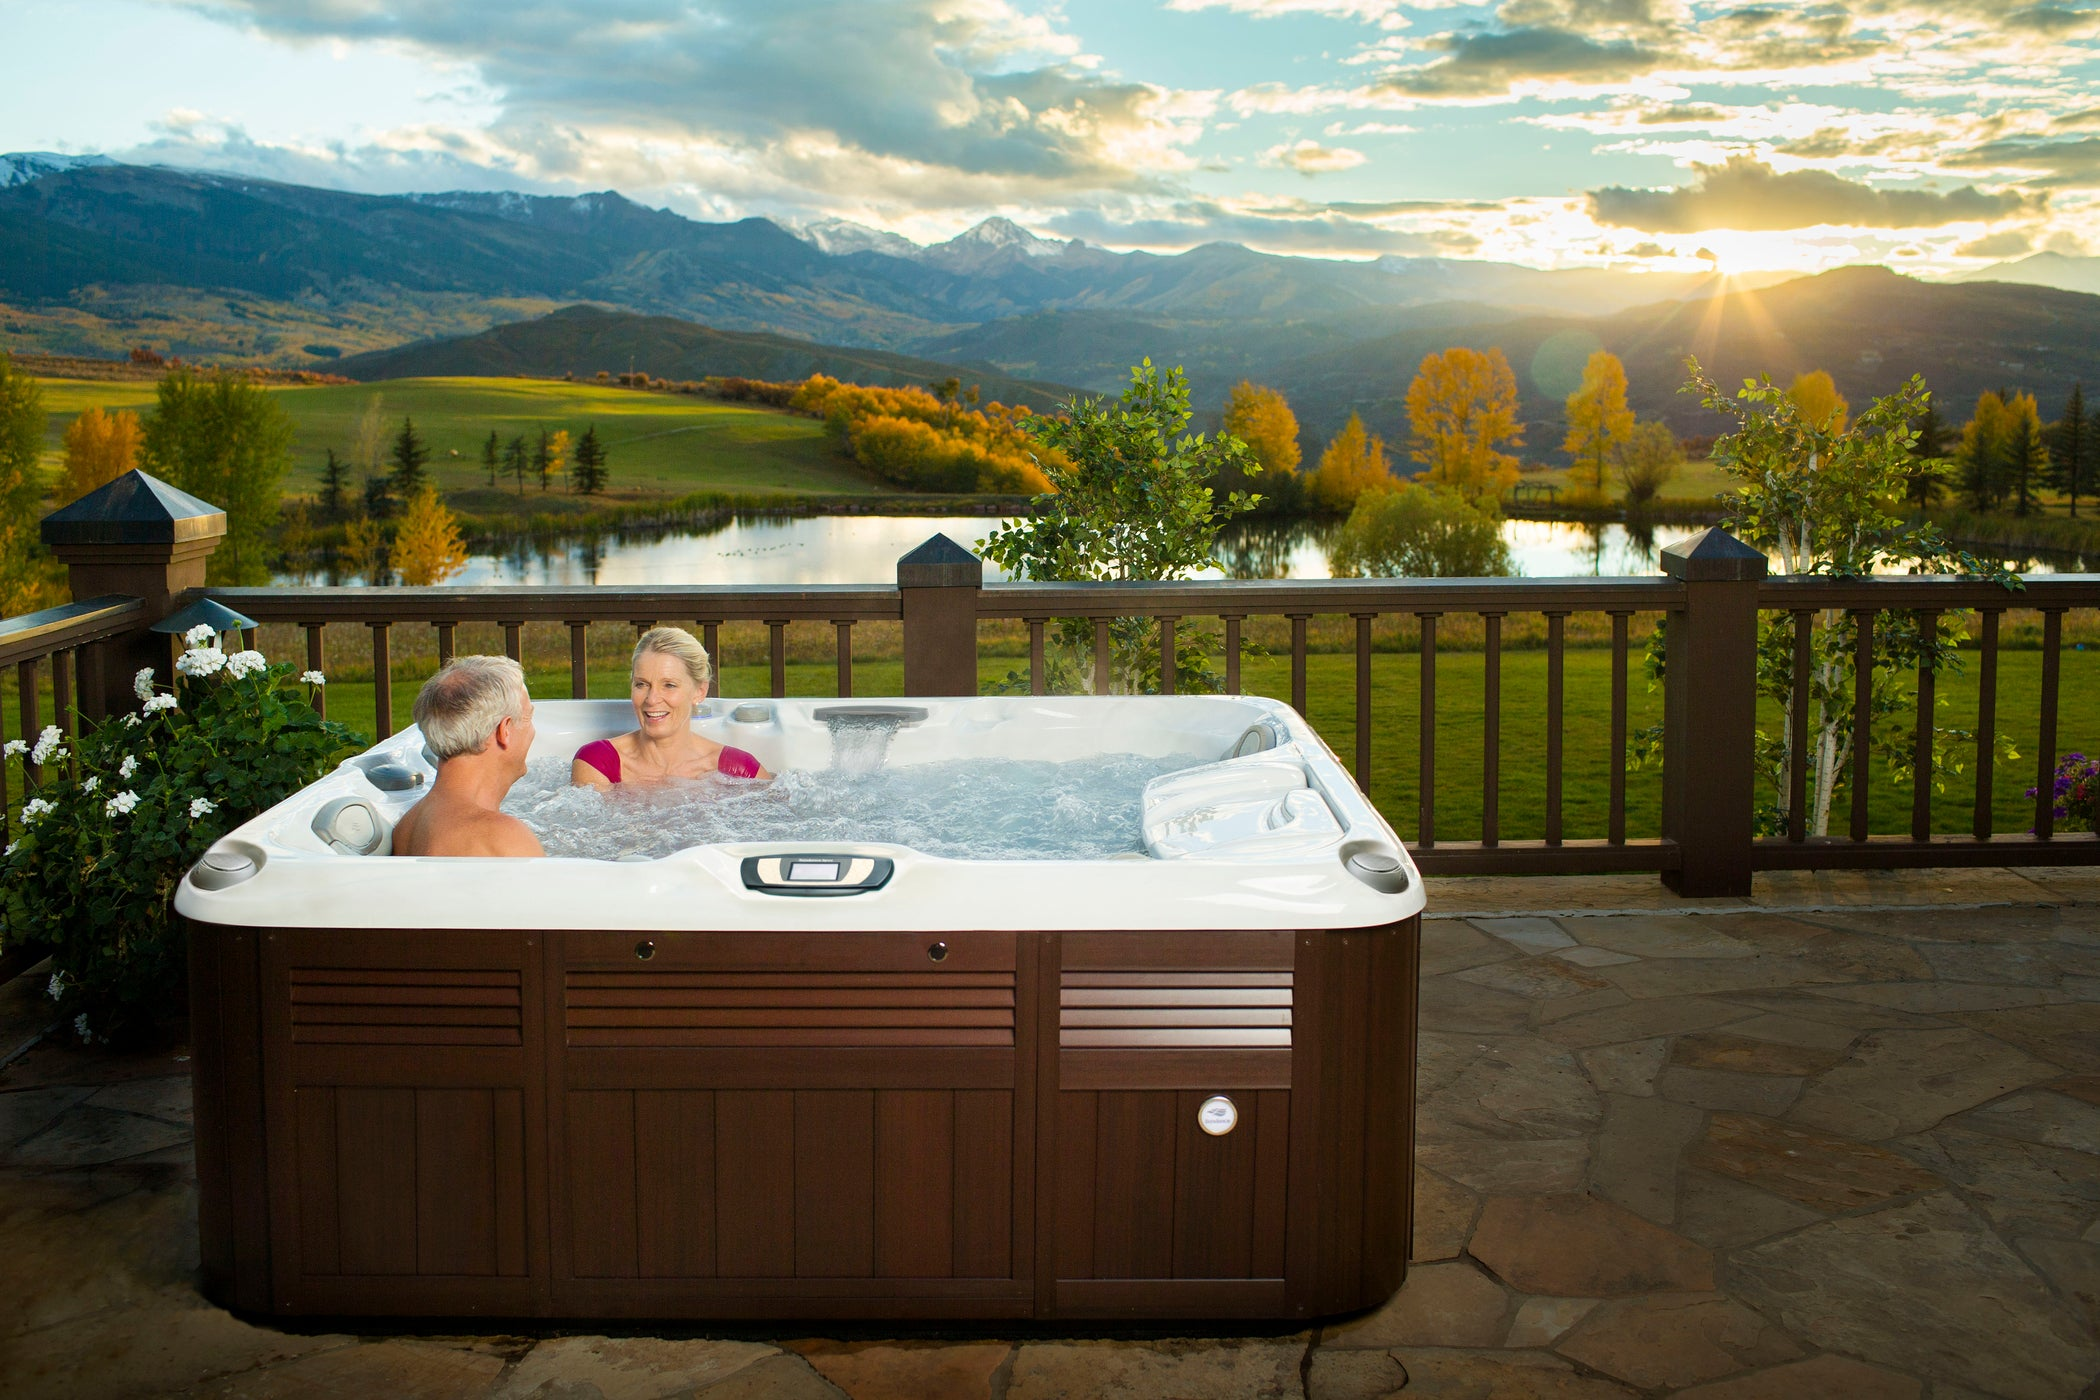 Https Collections Jacuzzi Hot Tub For And Spa Parts Spares Accessories Packs Equipment Sundance Spasv1491308954